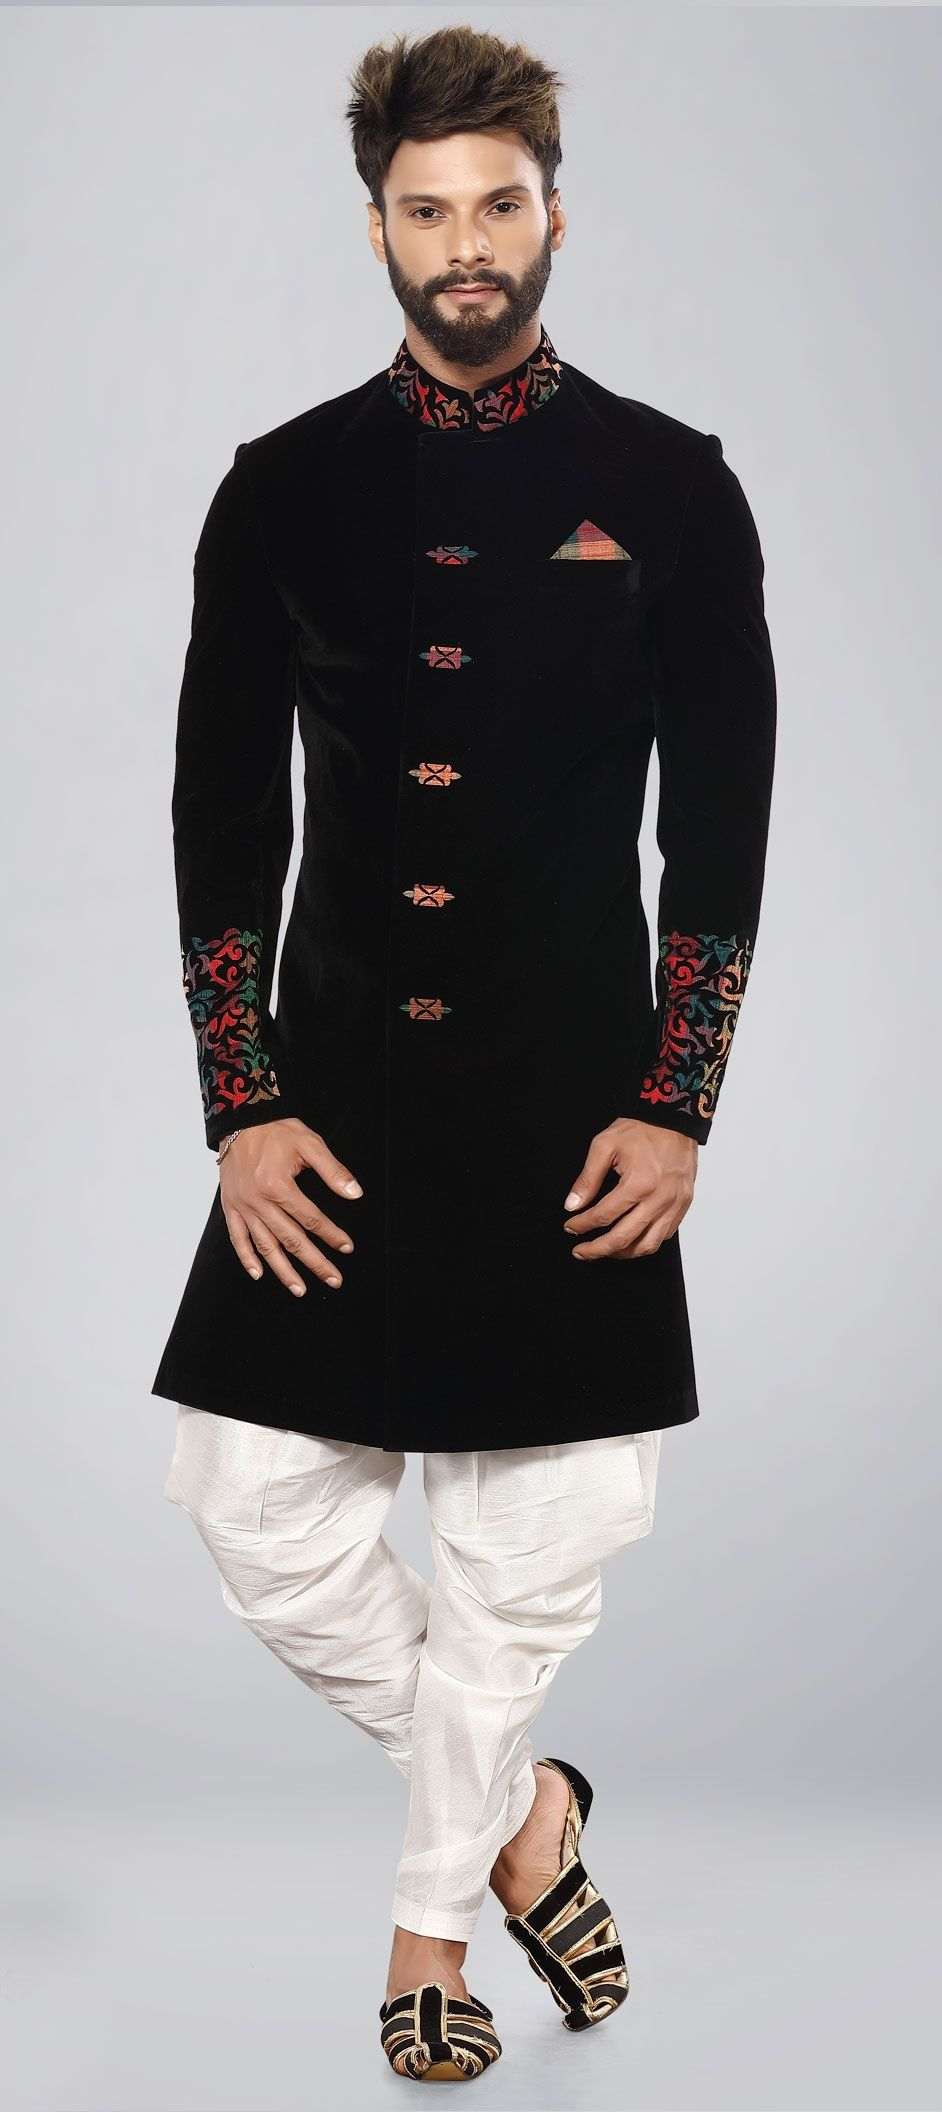 Men's Indo Western Outfits: Look Stylish and Charming